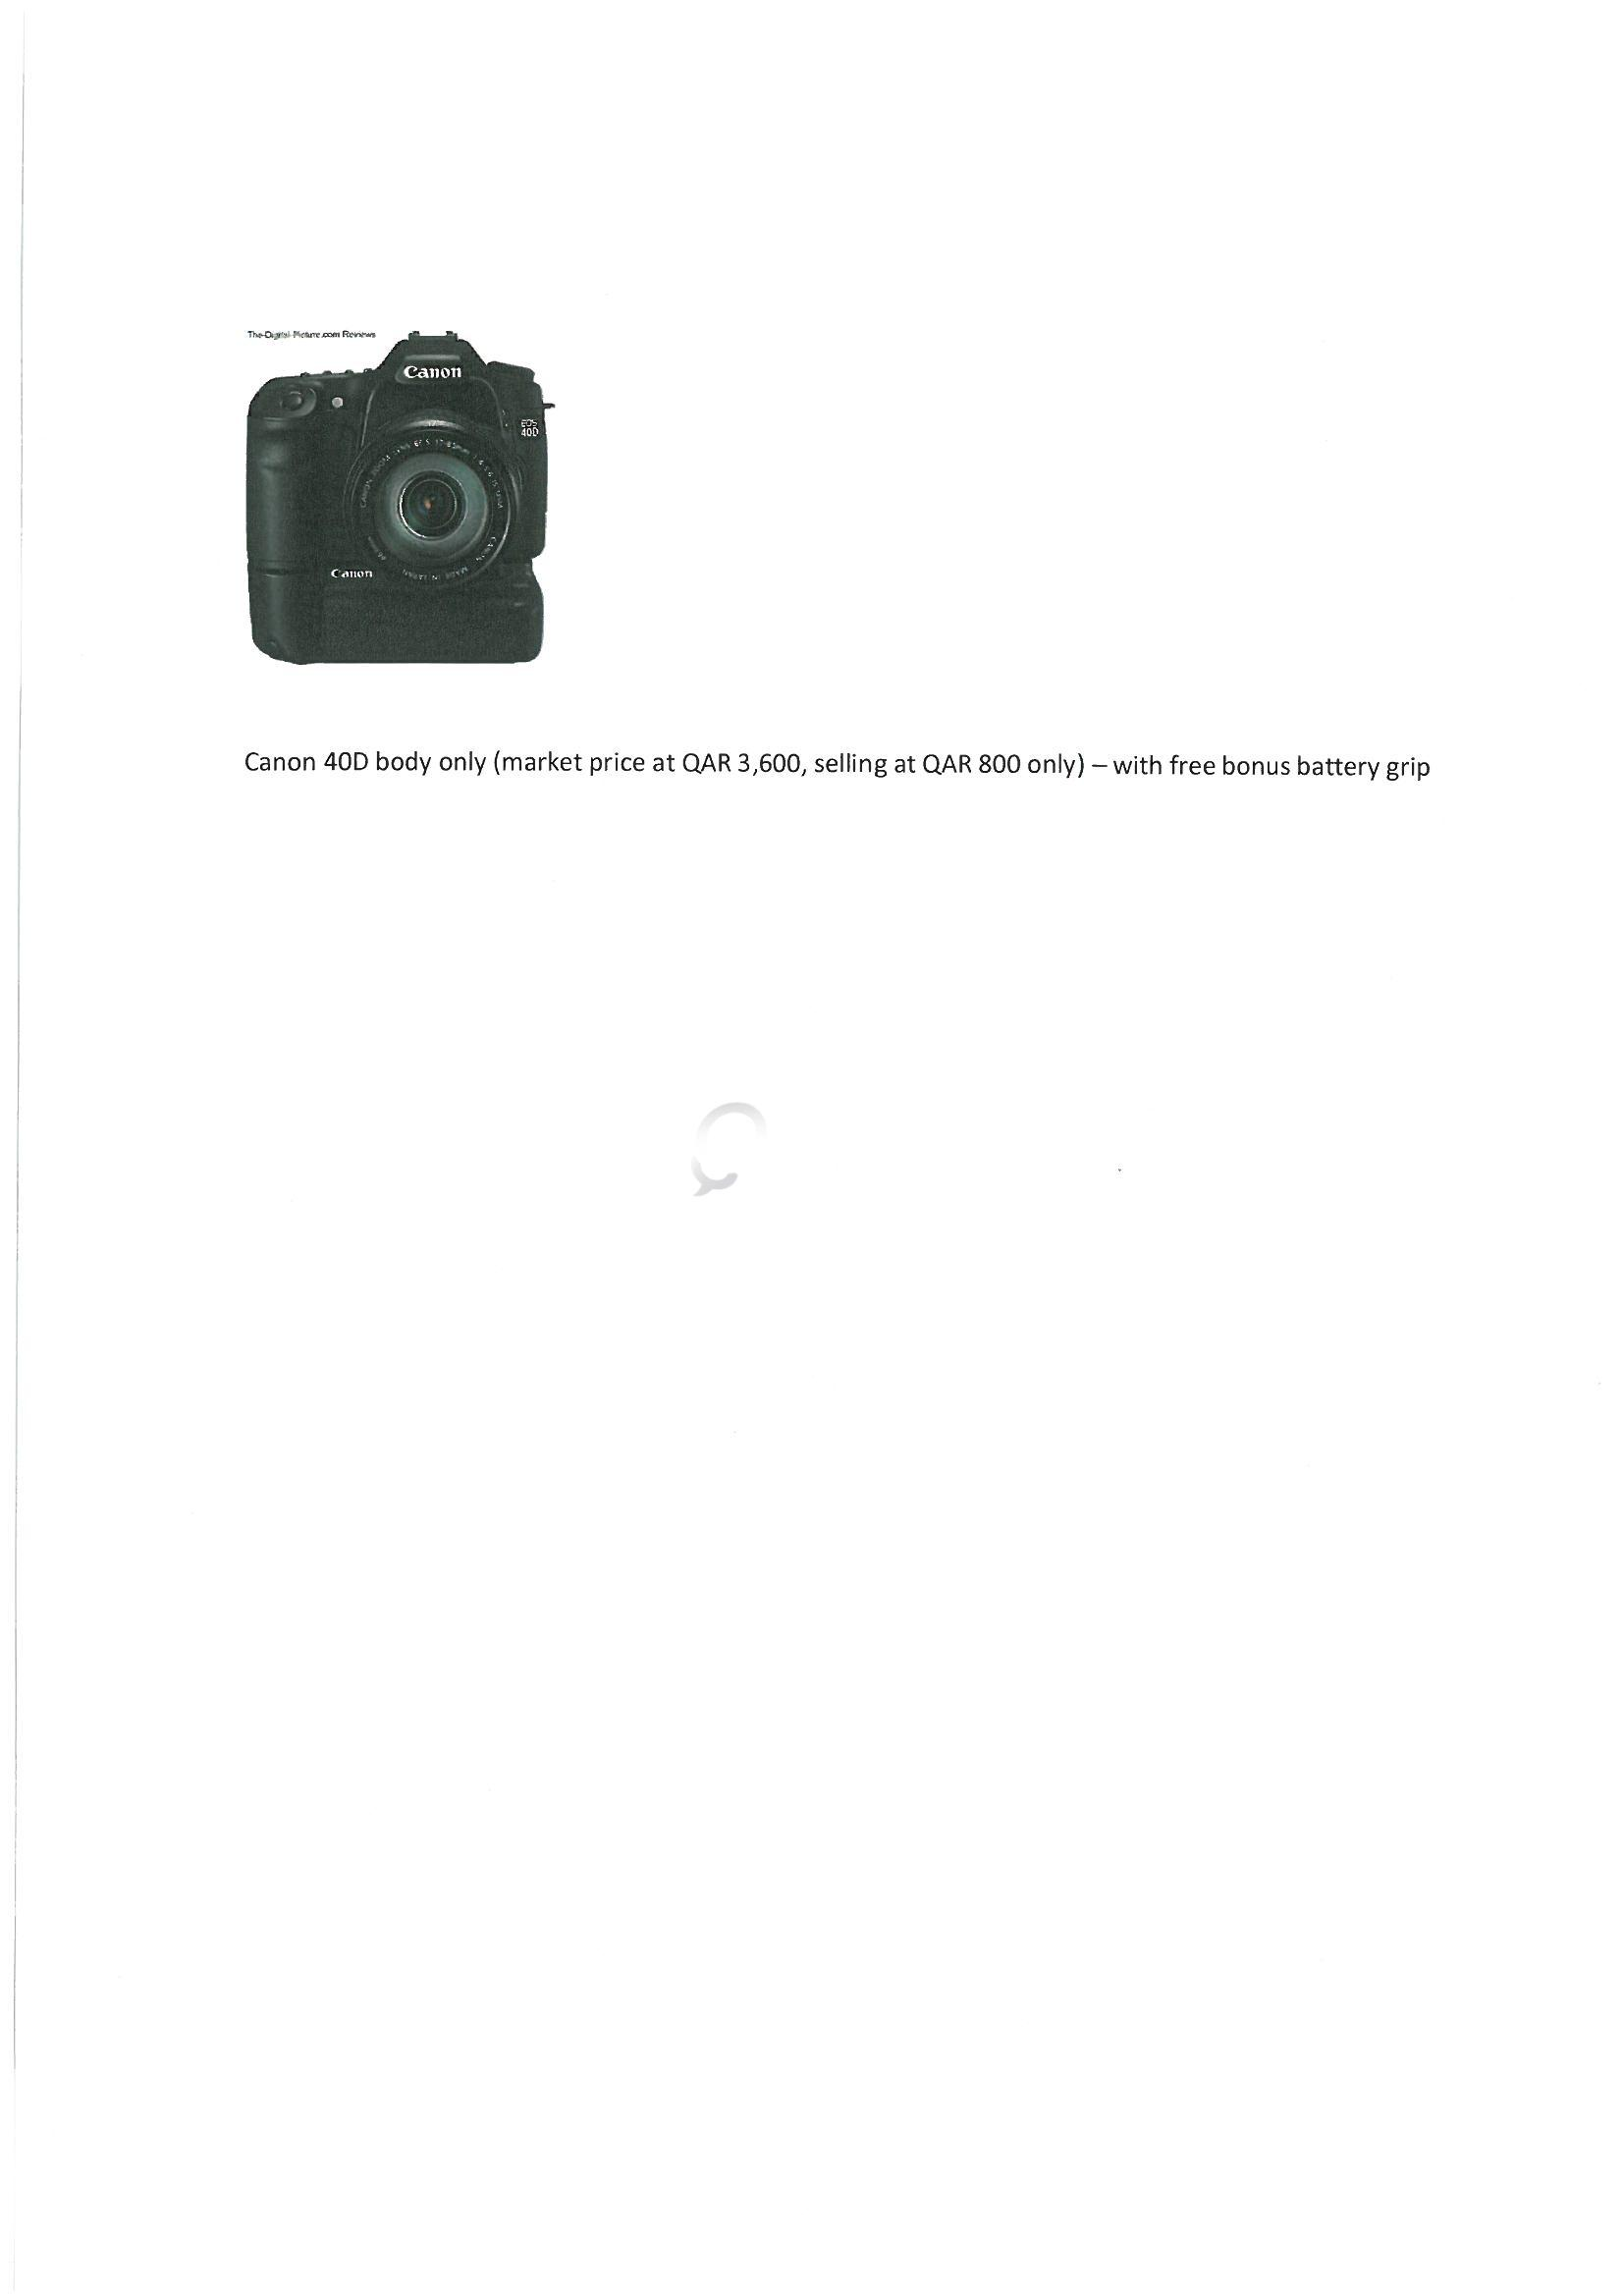 Canon 40D (Body only) DSLR with free battery grip